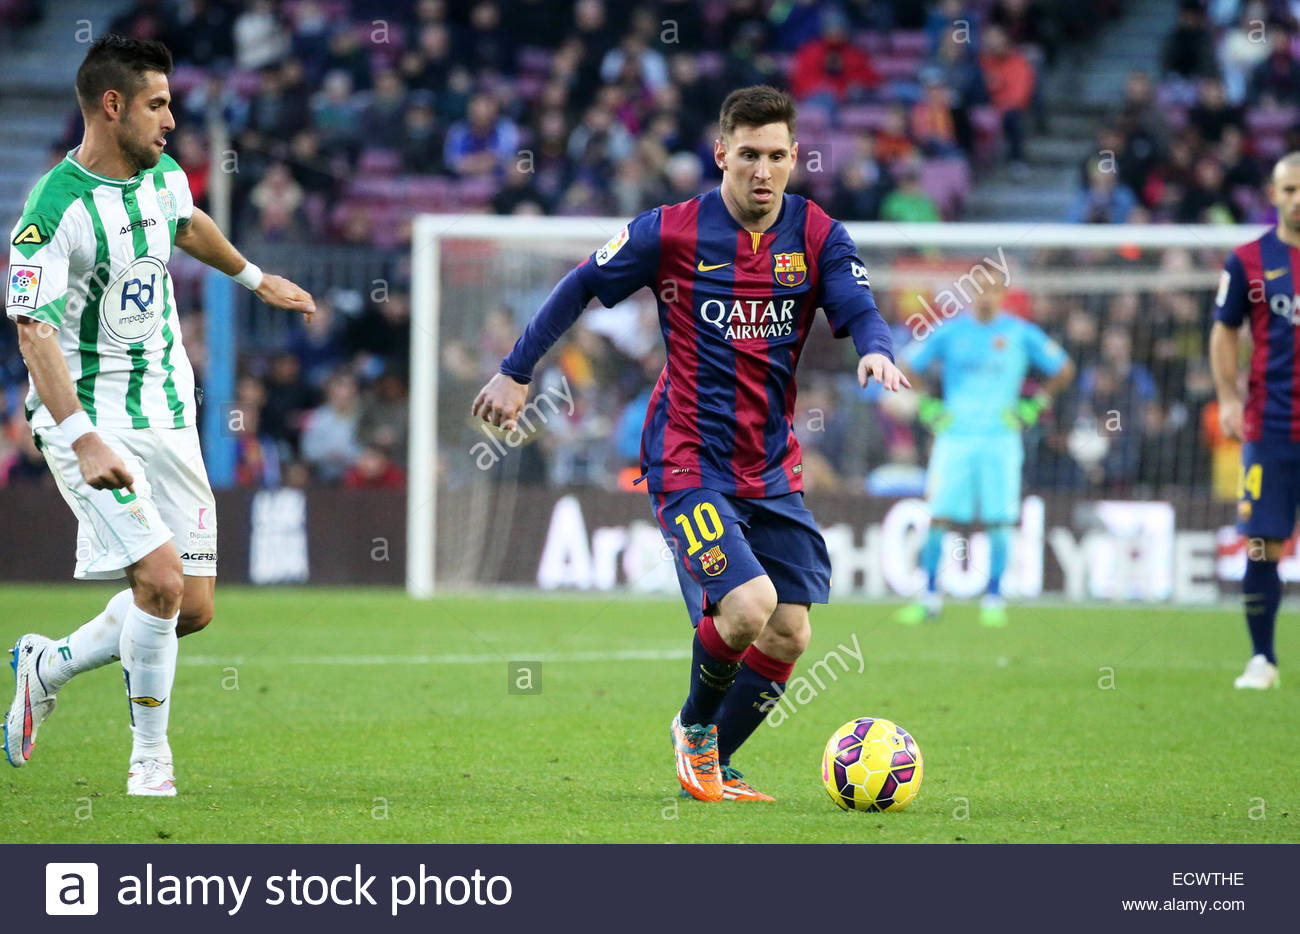 Barcelona, Spain. 20th Dec, 2014. Leo Messi in the match between FC Barcelona and Cordoba CF, for the week 16 of Stock Photo